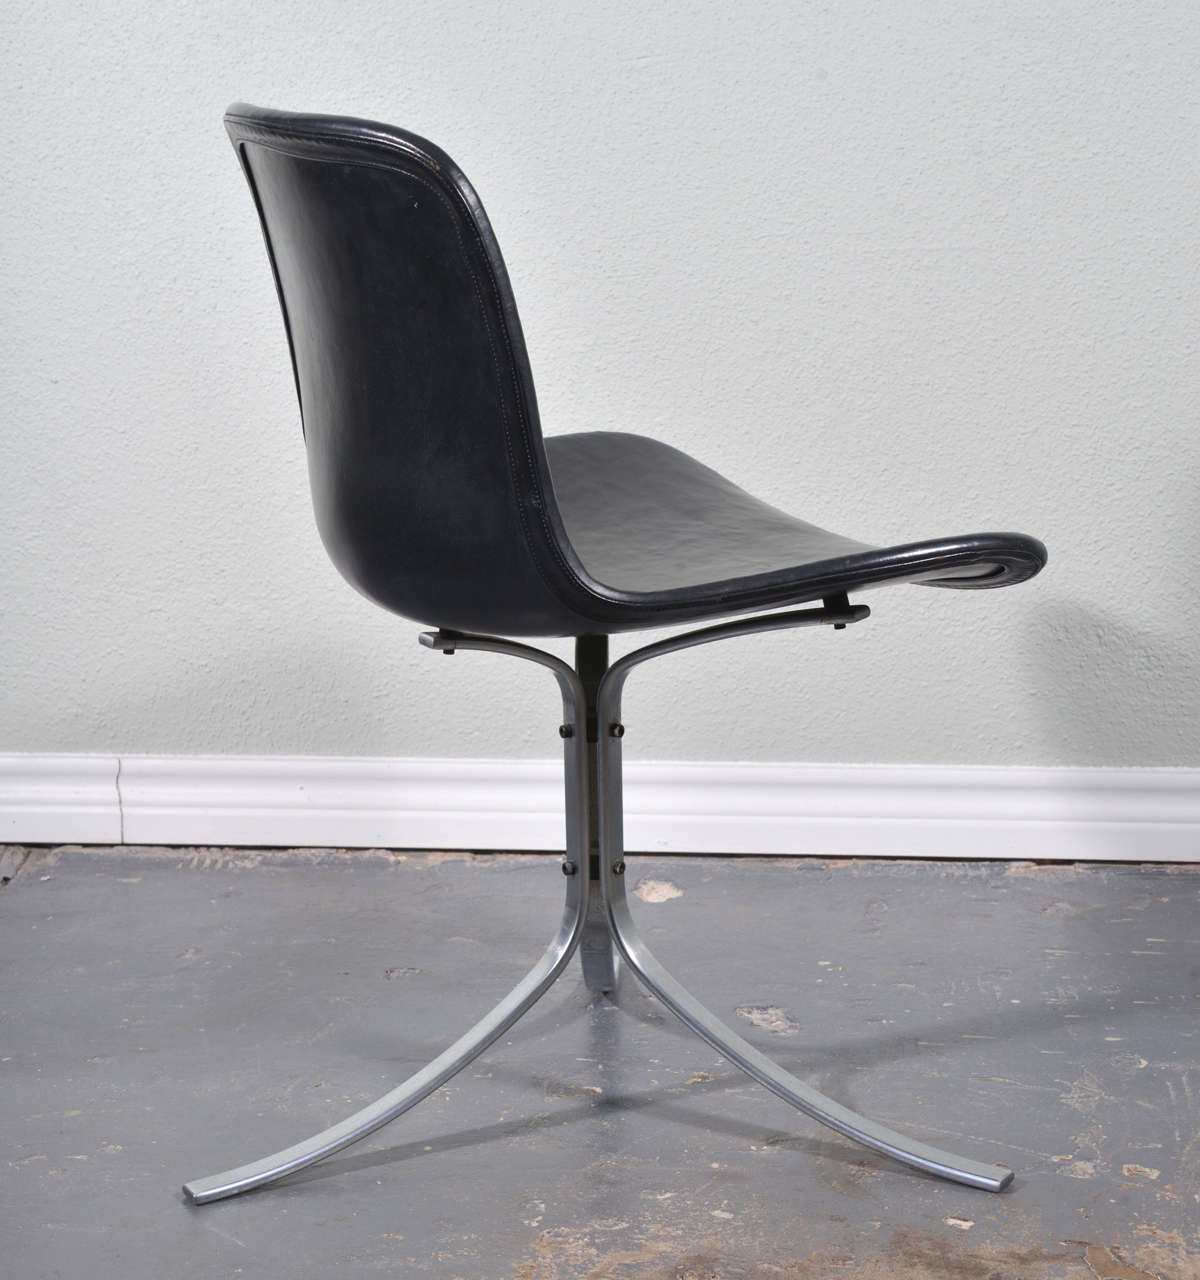 Poul Kjaerholm PK 9 Chair (6) for E. Kold Christensen - The Exchange Int